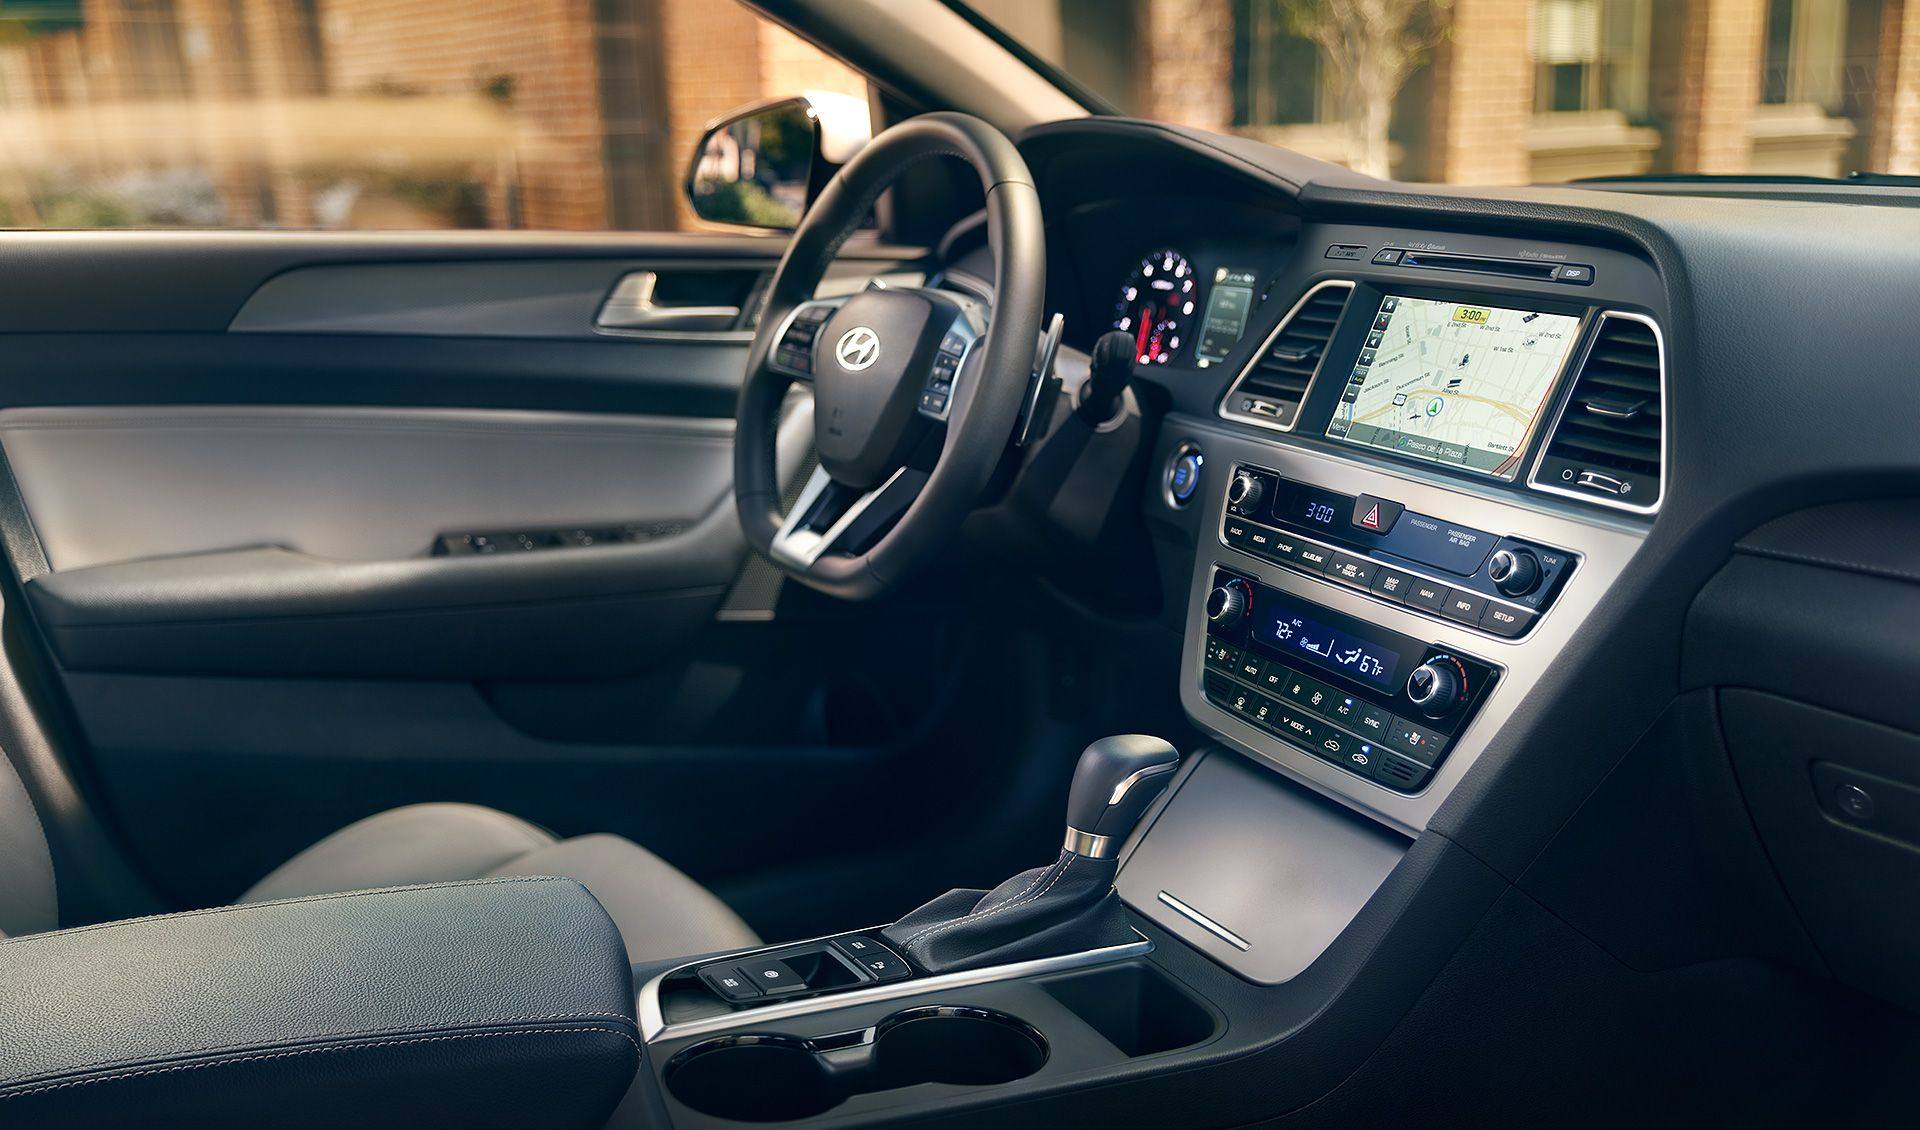 The Luxurious Interior of the 2017 Sonata